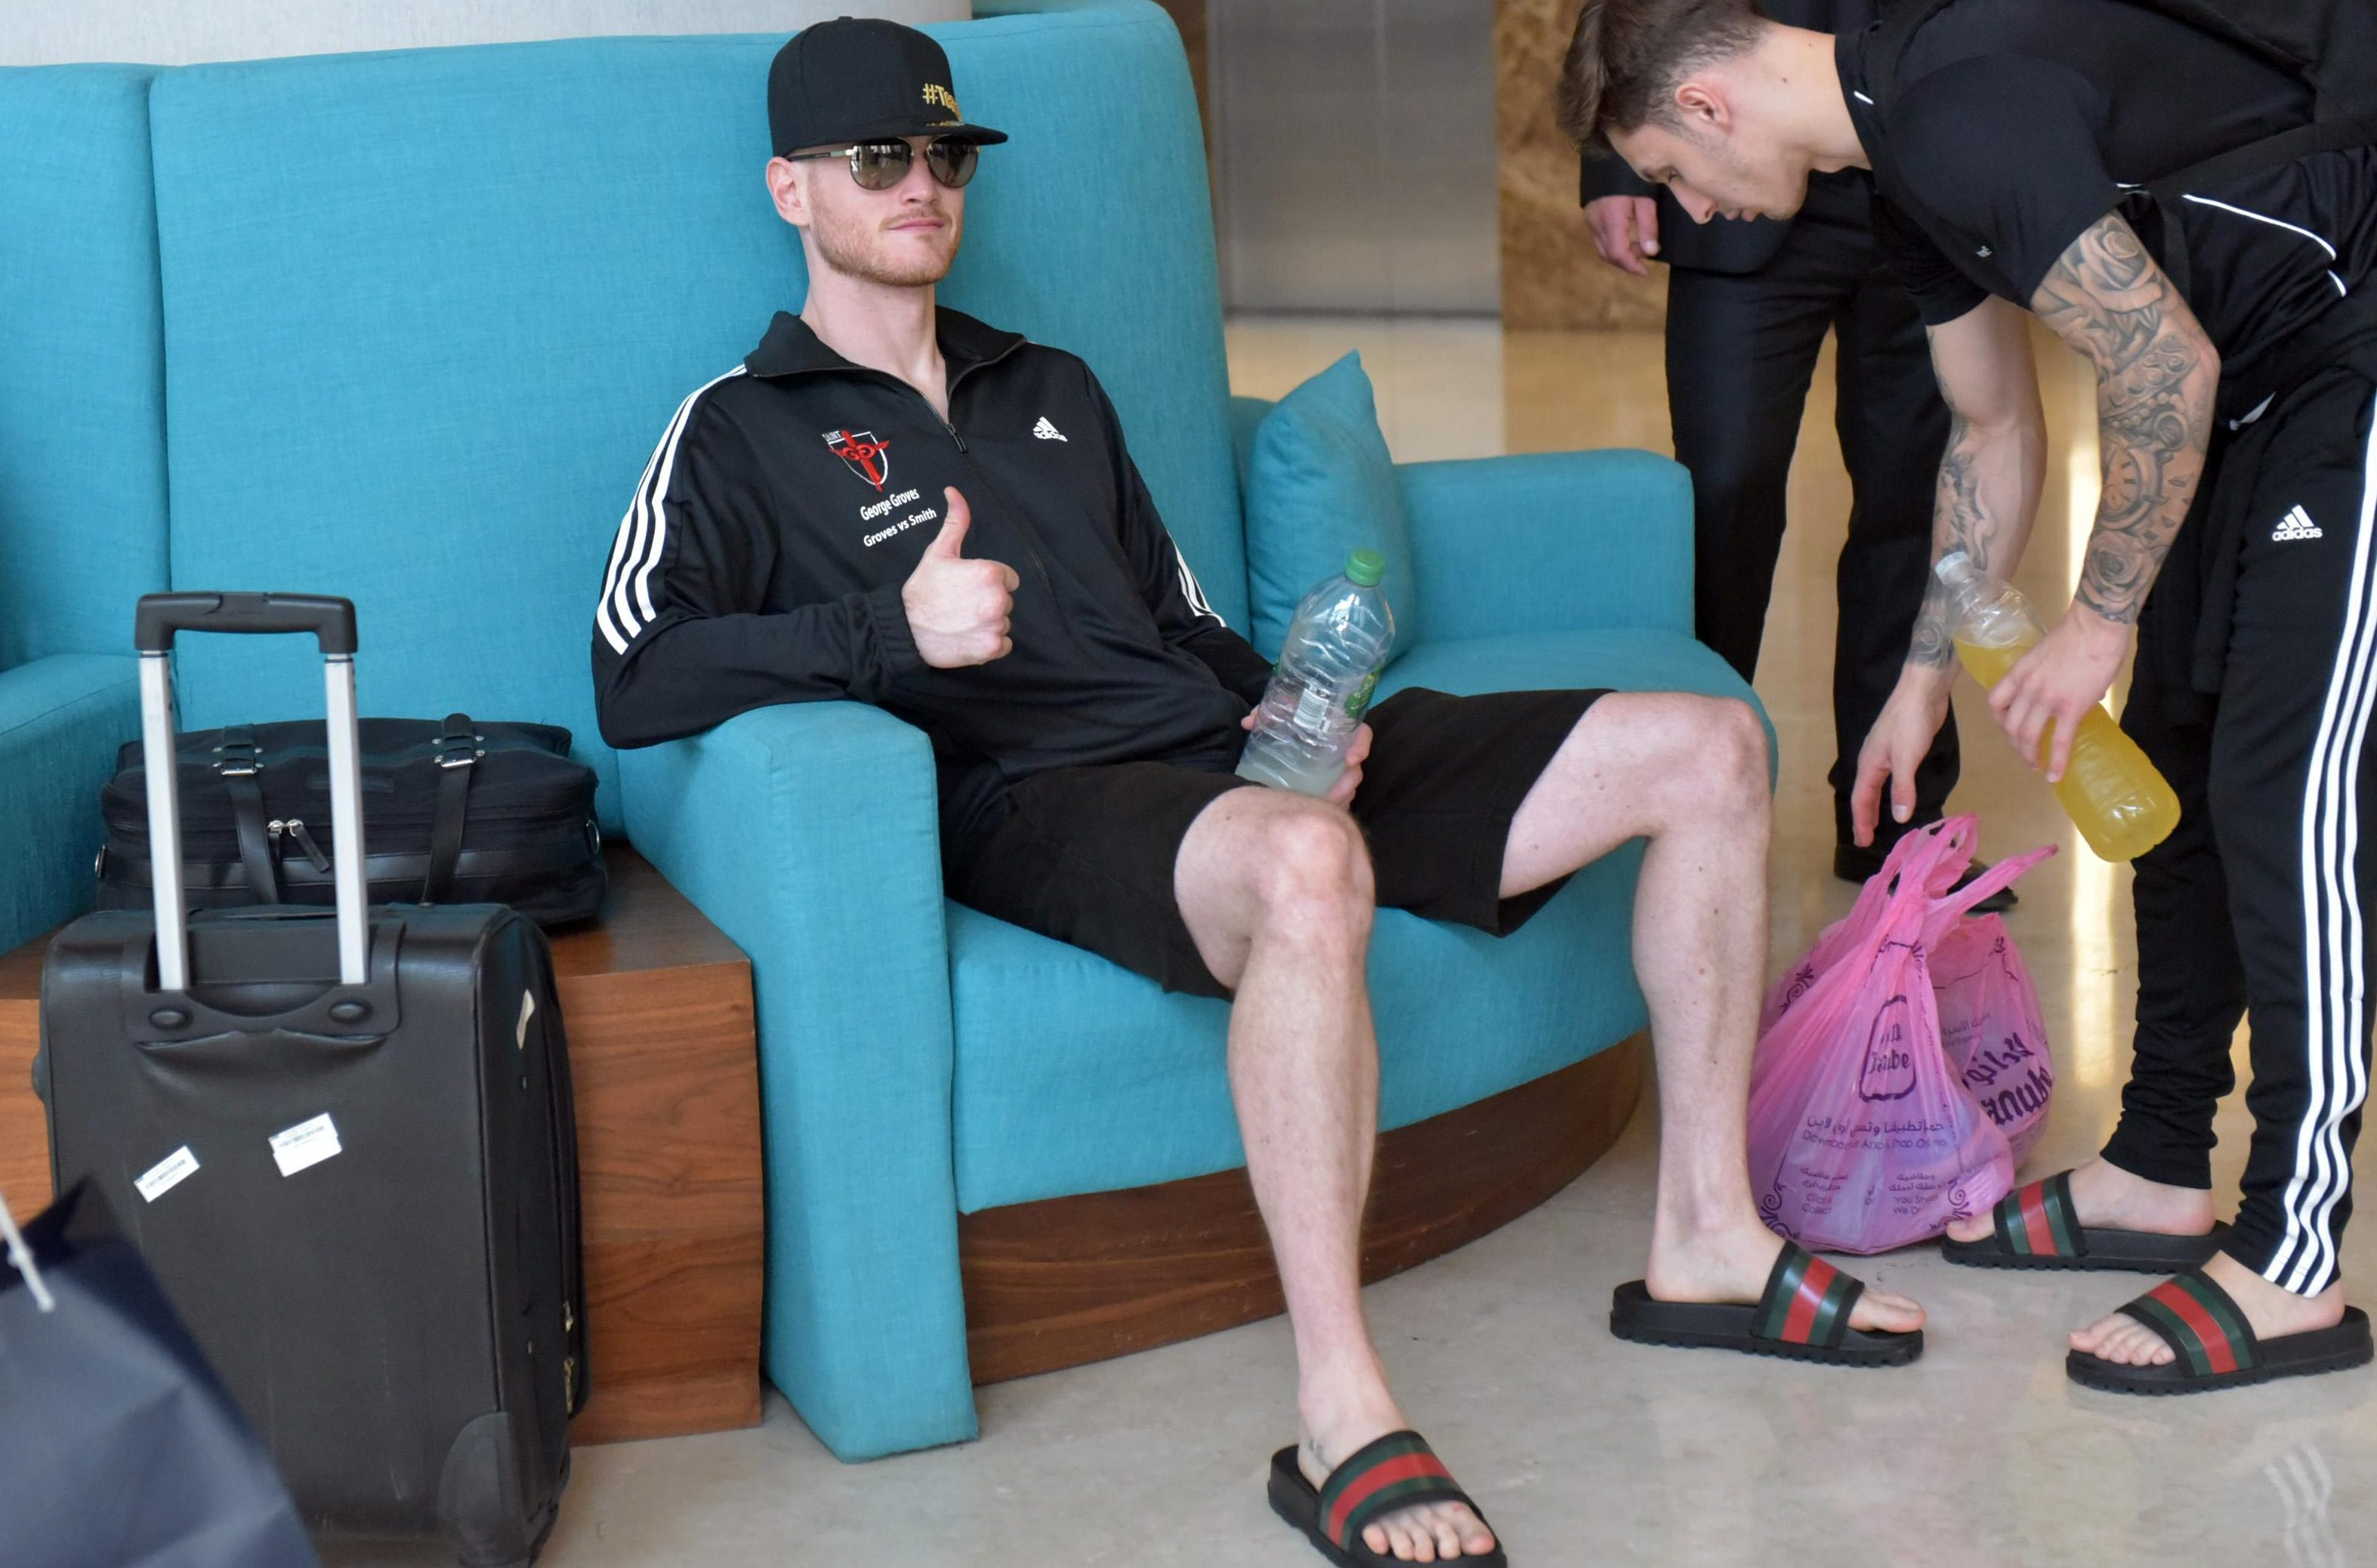 George Groves and his team wear £180 Gucci sliders ahead of his bout against Callum Smith